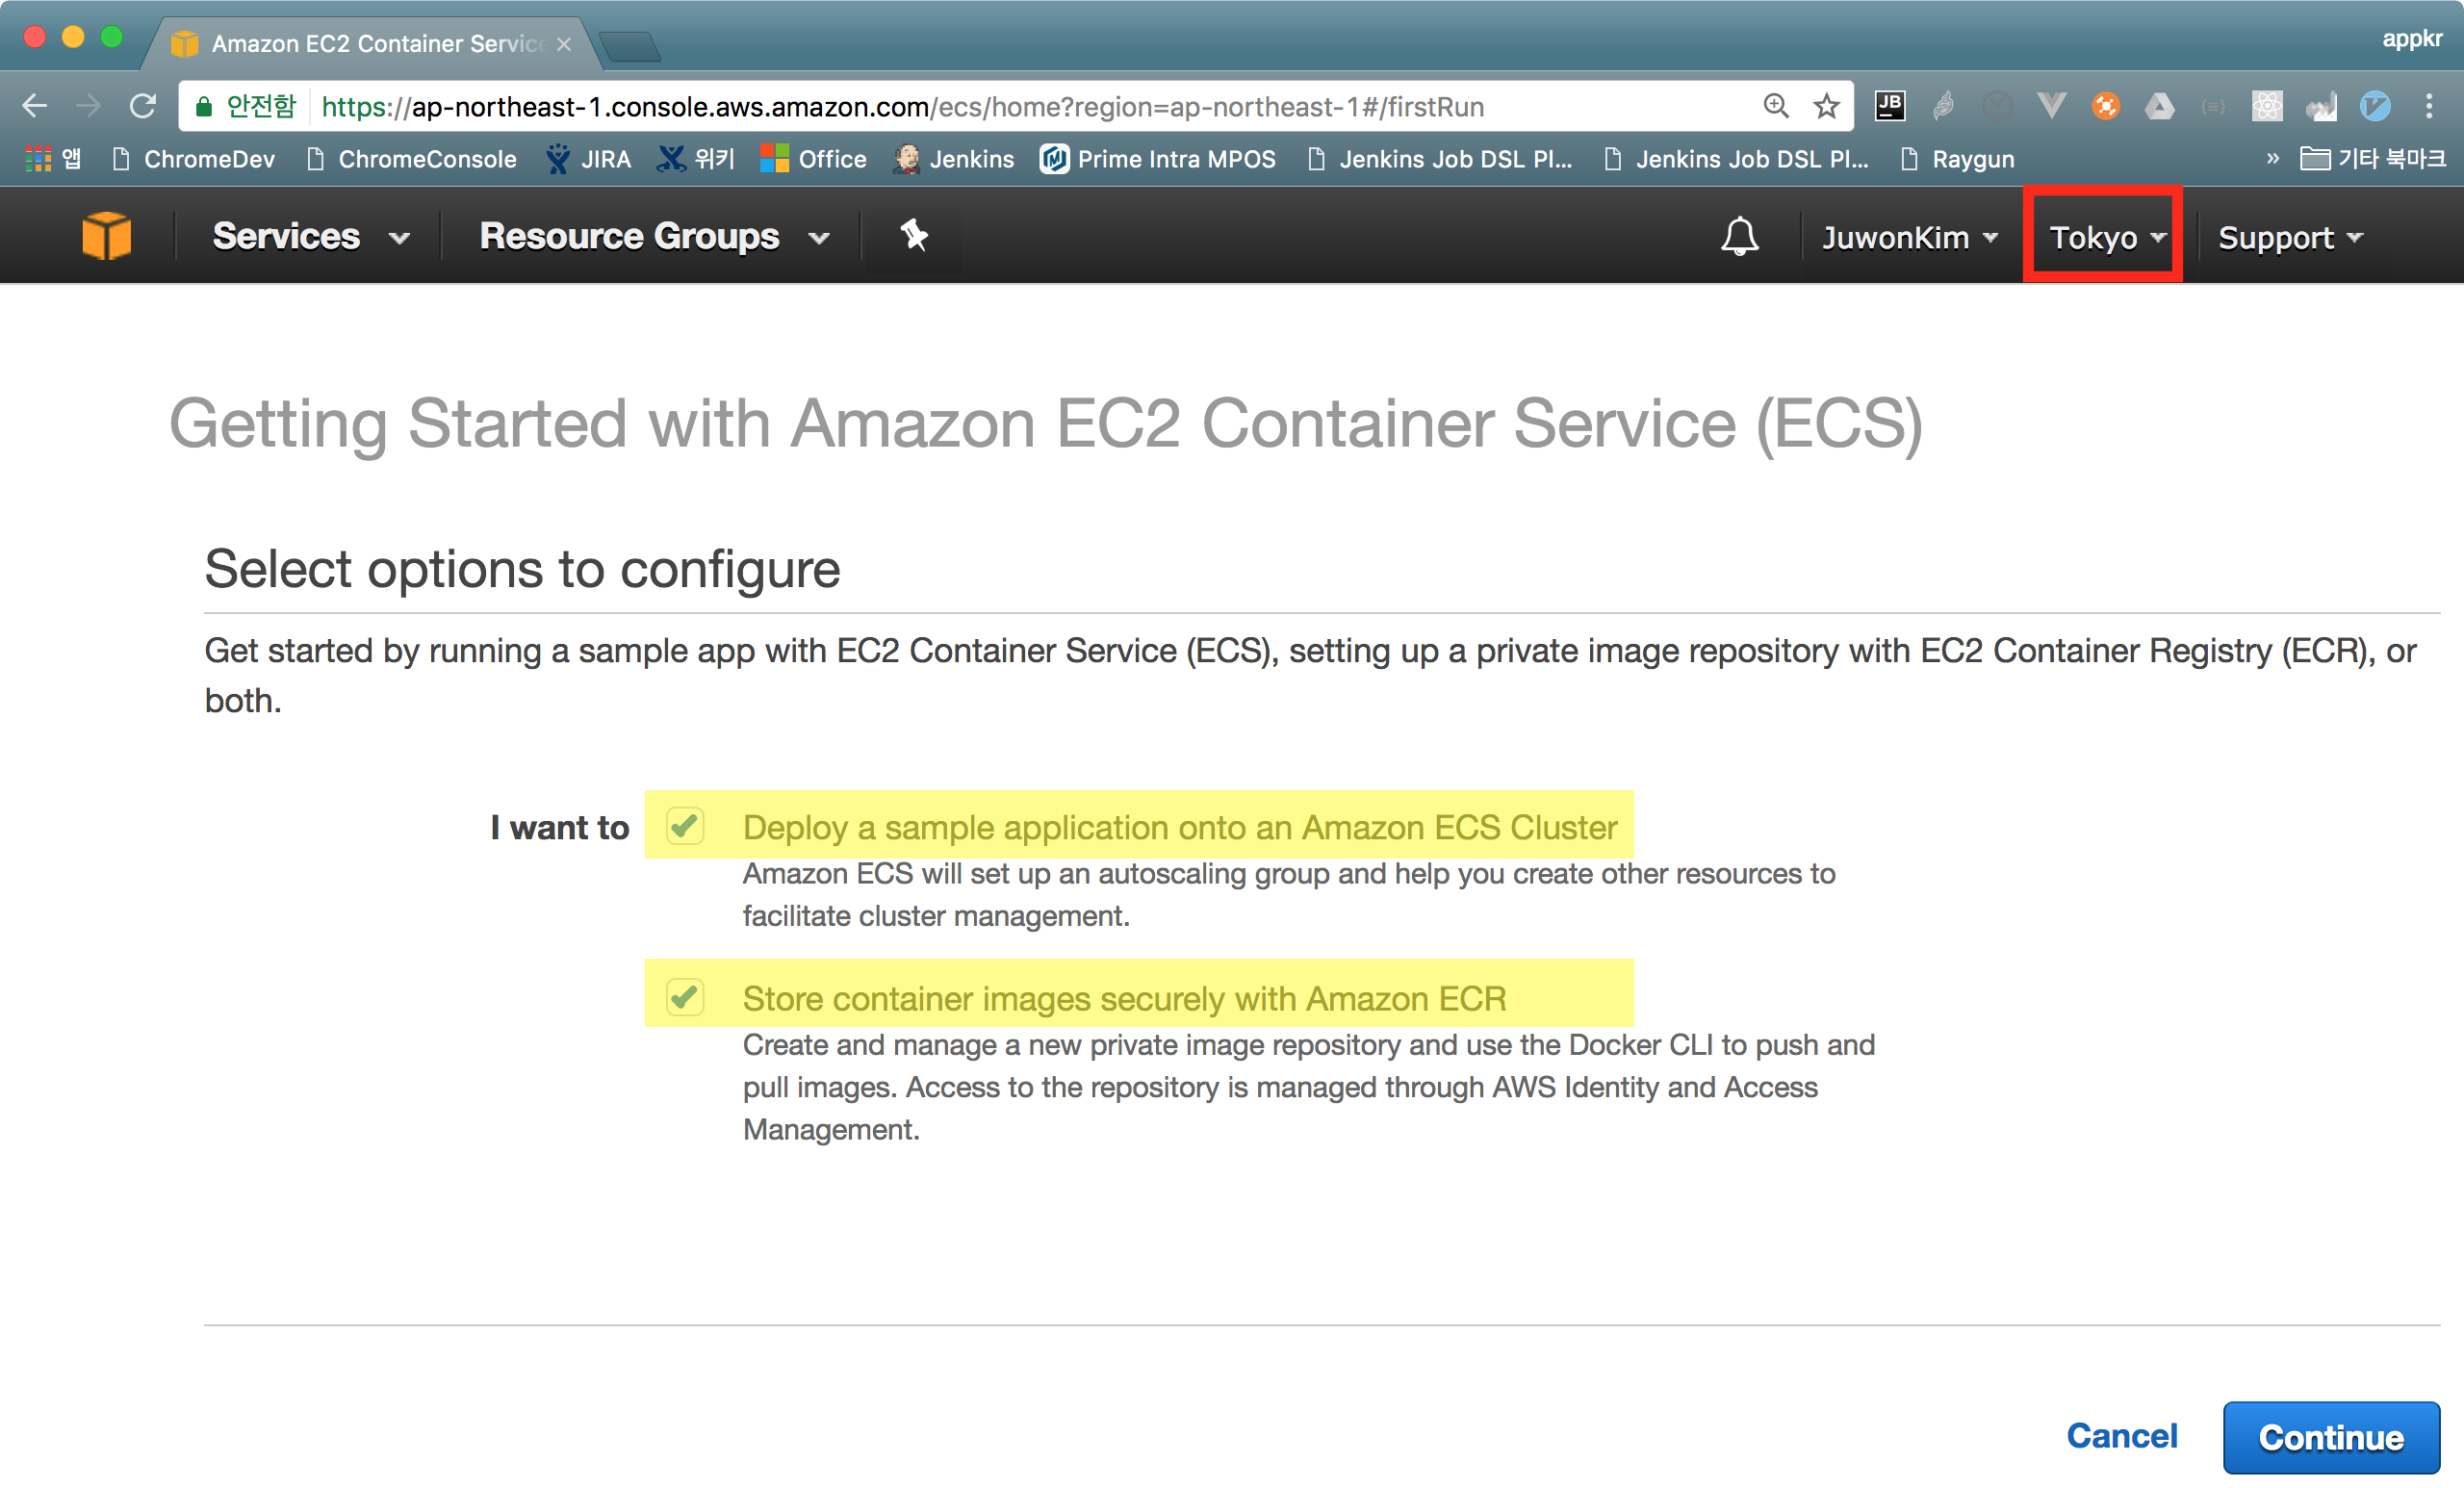 Getting Started with Amazon EC2 Container Service(ECS)